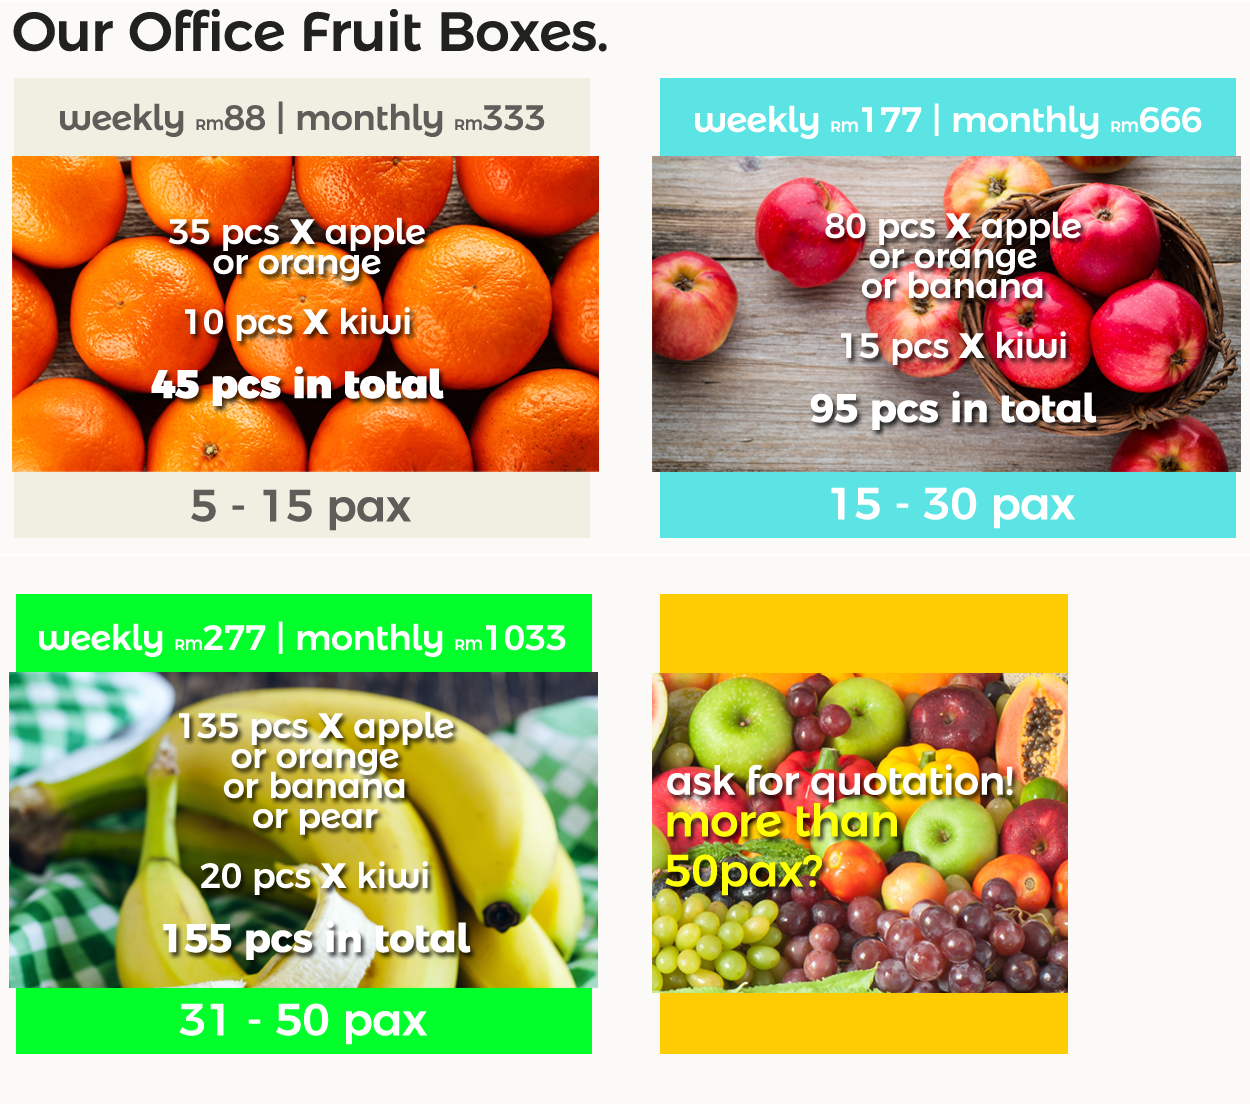 Coporate-Fruit-Box-2.png